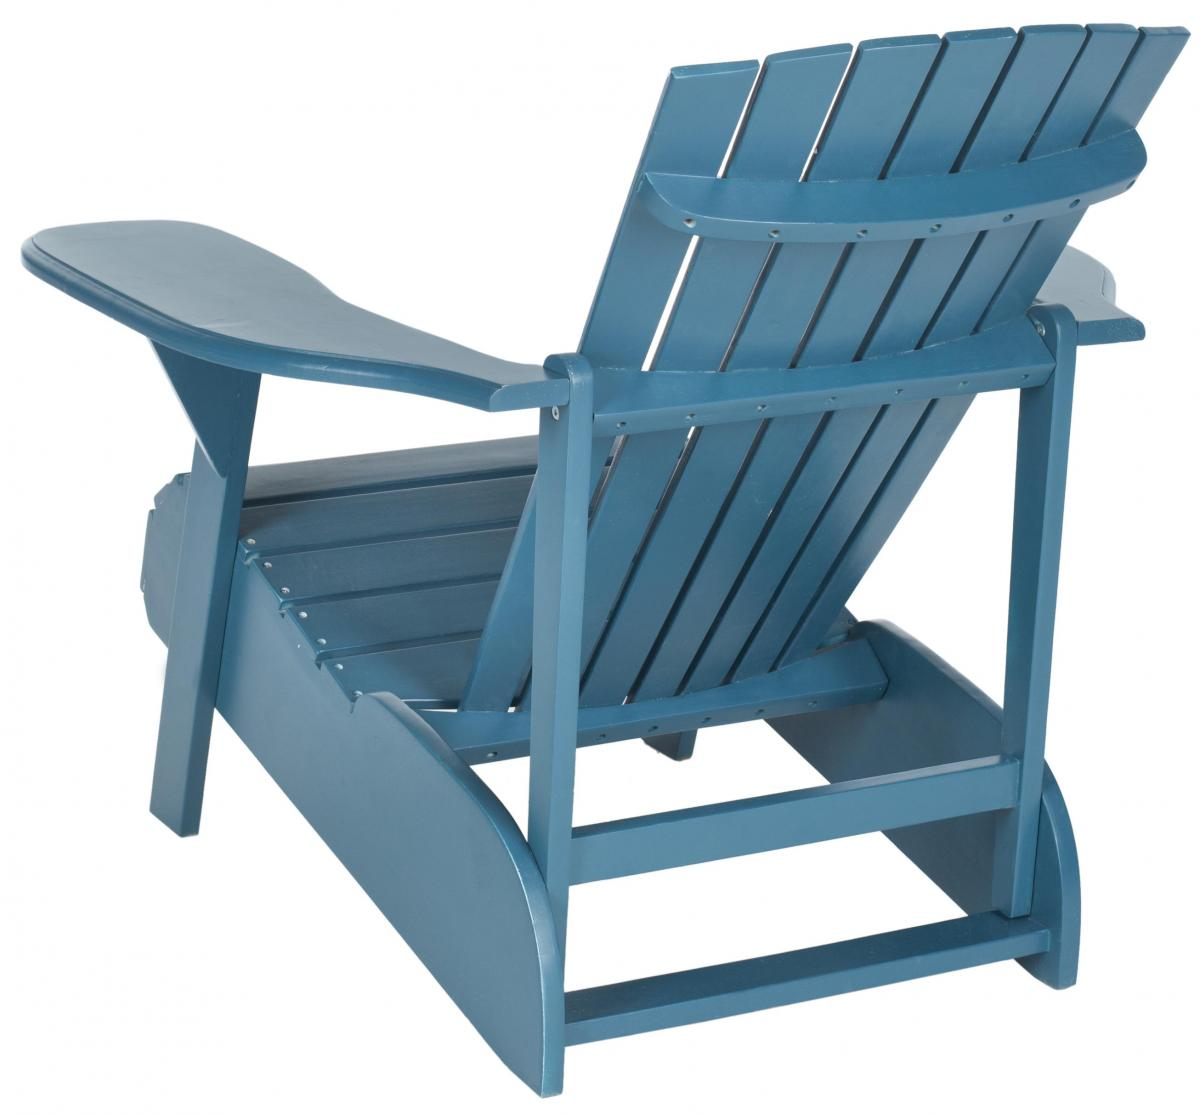 Teal Adirondack Chairs Pat6700d Adirondack Chairs Furniture By Safavieh